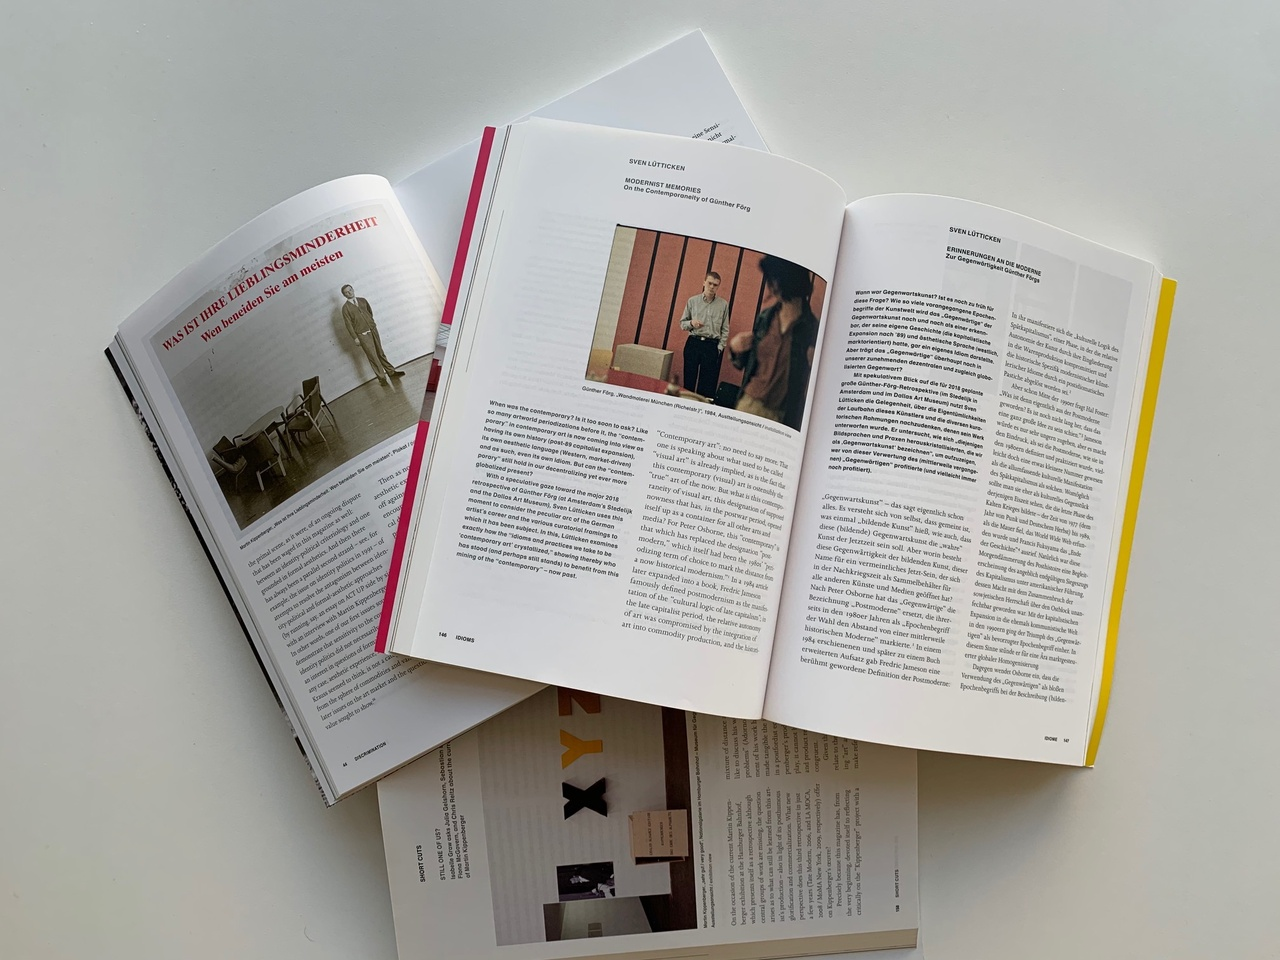 "Texte zur Kunst, Artikel: ""Sven Lütticken: Zur Gegenwärtigkeit Günther Förgs"" (Heft 108), ""Isabelle Graw befragt Julia Gelshorn, Sebastian Egenhofer, Fiona McGovern und Chris Reitz zur Aktuellen Rezeption Martin Kippenbergers"" (Heft 90), ""Sabeth Buchmann und Isabelle Graw: Kritik der Kunstkritik"" (Heft 113) /  ""Sven Lütticken: On the Contemporaneity of Günther Förg,"" (issue 108),""Isabelle Graw asks Julia Gelshorn, Sebastian Egenhofer, Fiona McGovern, and Chris Reitz about the current reception of Martin Kippenberger,"" (issue 90), ""Sabeth Buchmann and Isabelle Graw: The Critique of Art Criticism,"" (issue 113)"